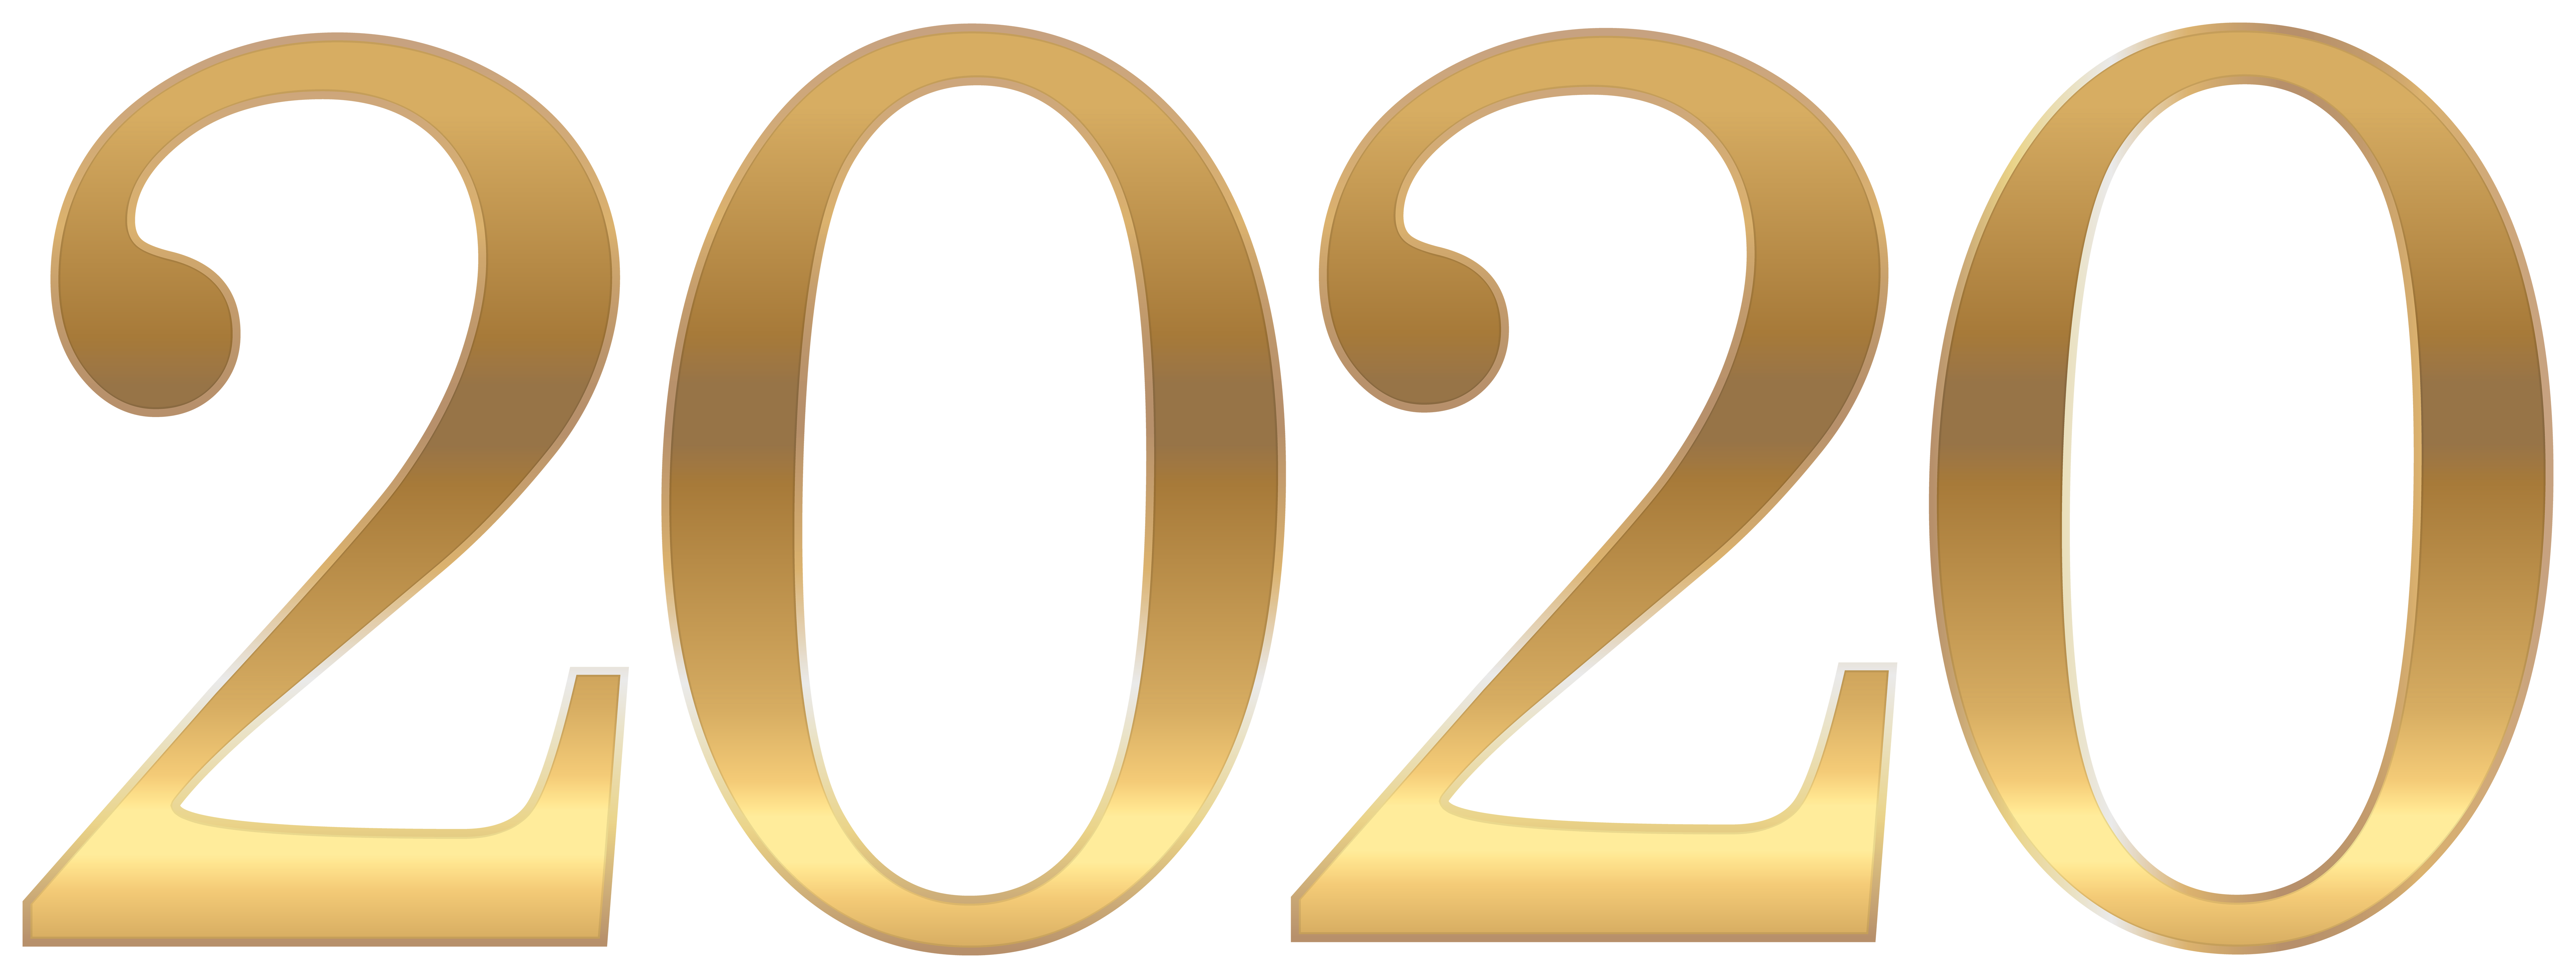 Gold 2020 PNG Clipart Gallery Yopriceville High